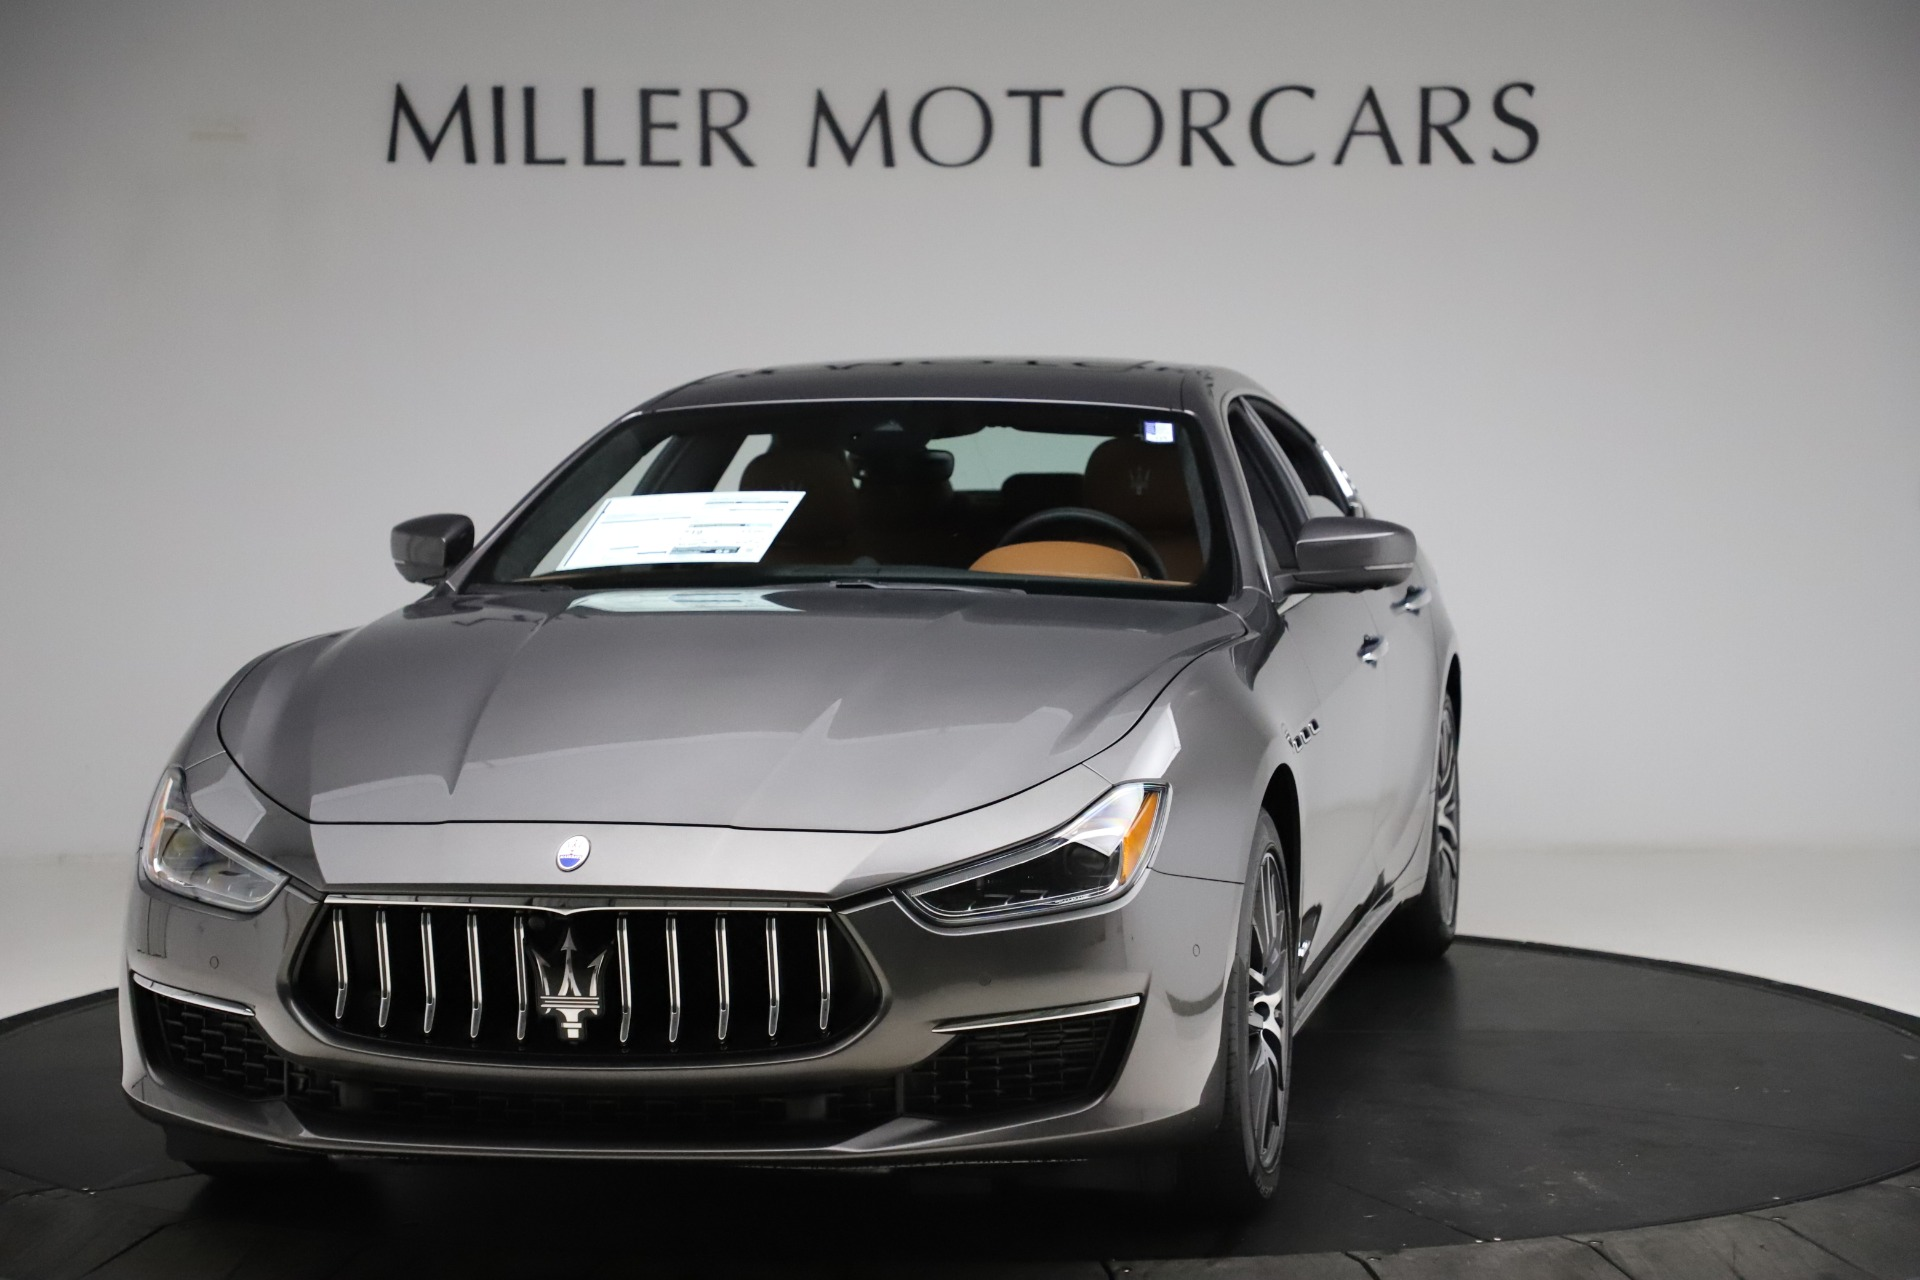 New 2021 Maserati Ghibli S Q4 GranLusso for sale Sold at Pagani of Greenwich in Greenwich CT 06830 1